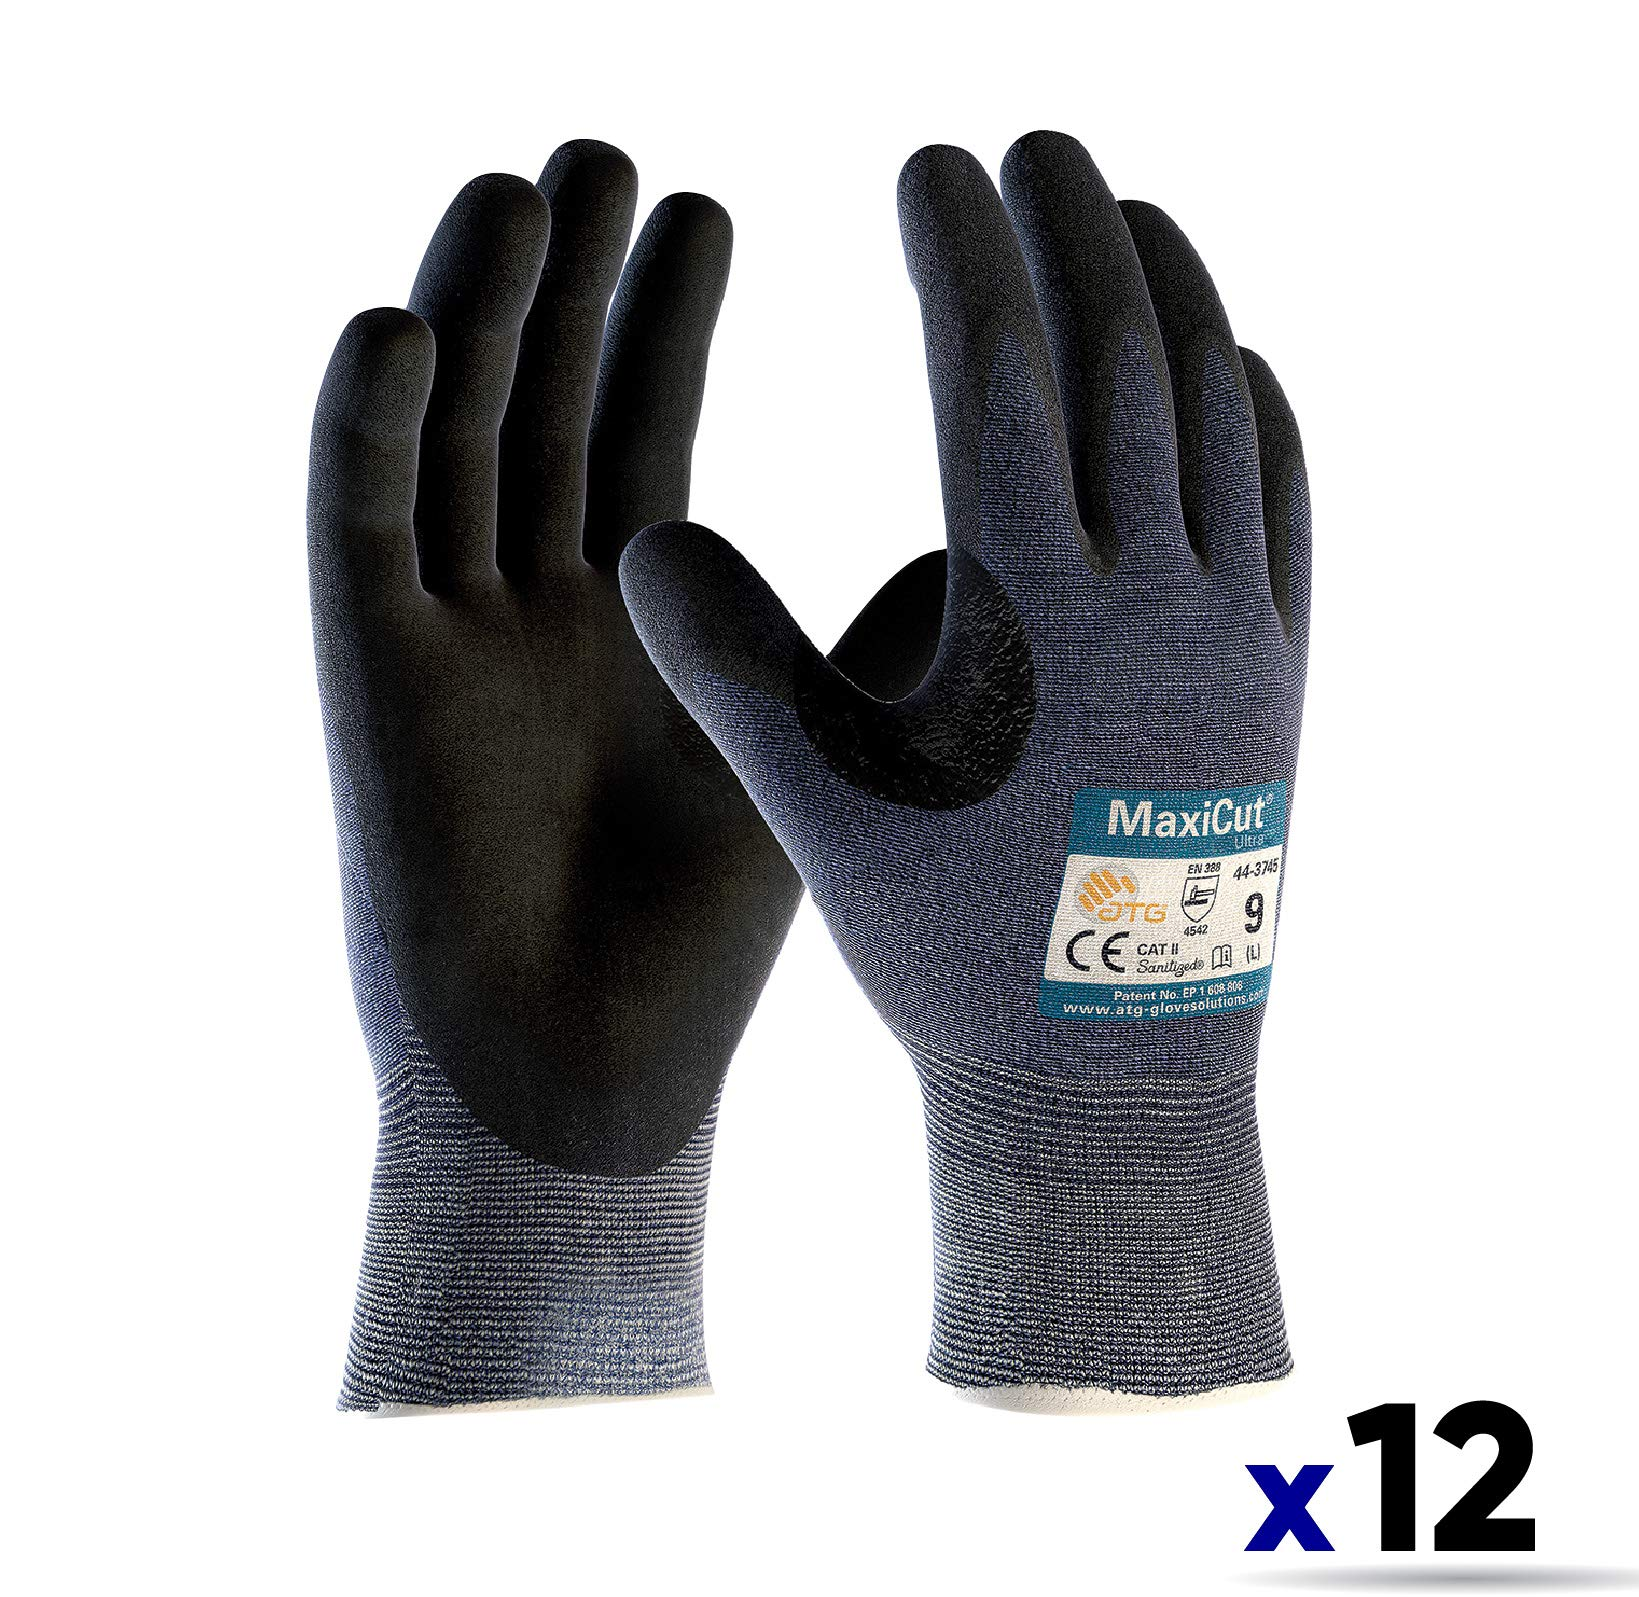 MAXICUT Ultra by ATG, 44-3745 (X-Large) - Level 3 Cut Resistant Gloves (12 Pairs) by PIP (Image #1)